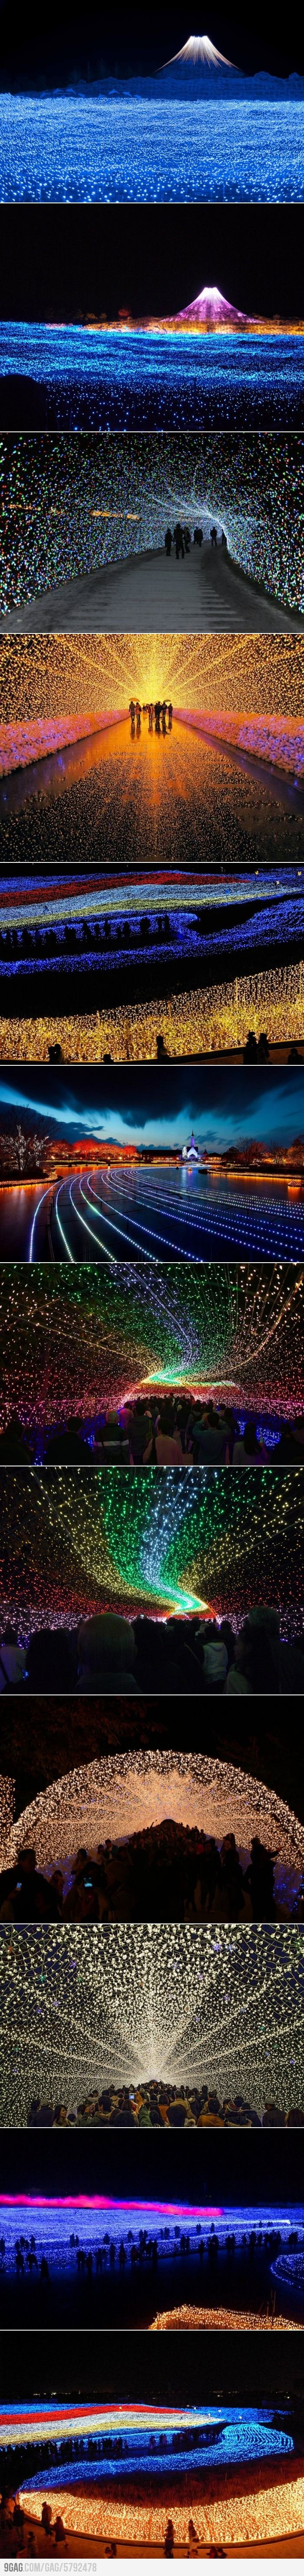 Japan's Winter Lights Festival..I so wanna be here in person!!! AWESOME~NESS~